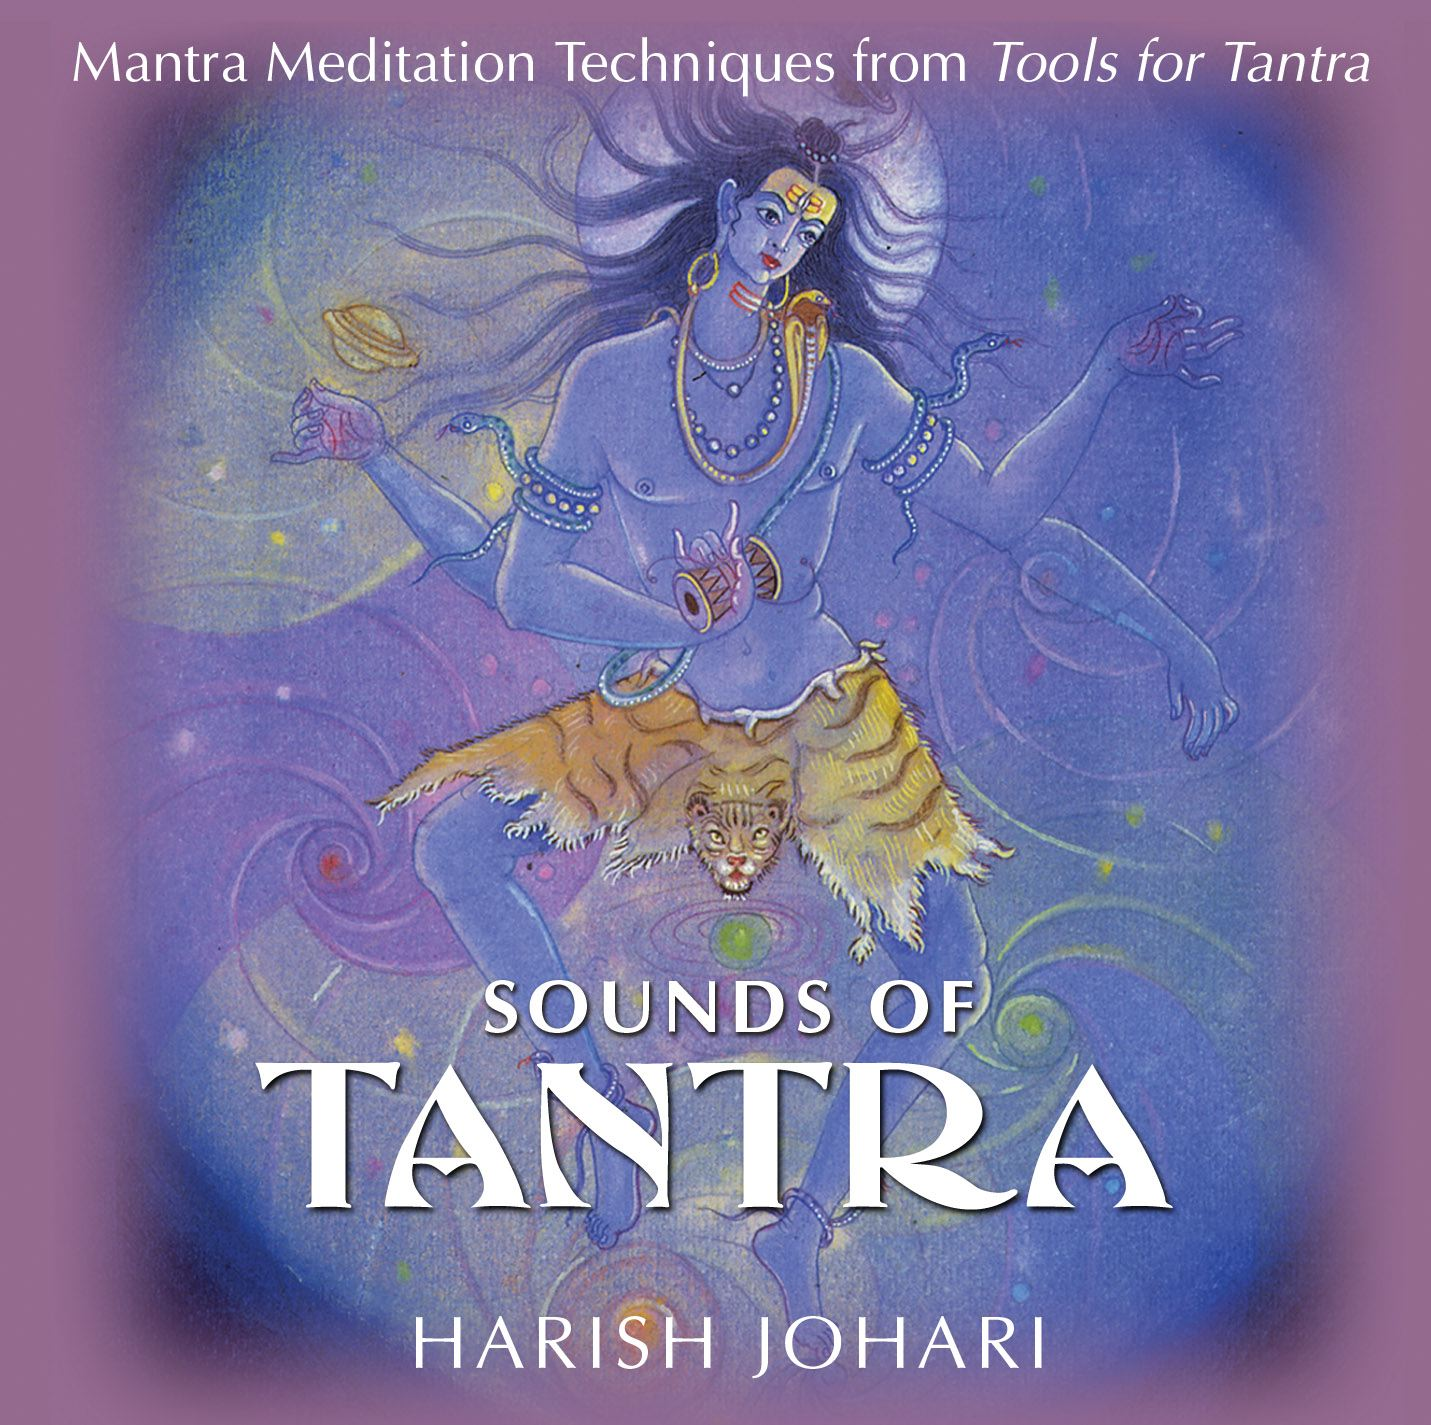 Sounds-of-tantra-9781594770036_hr